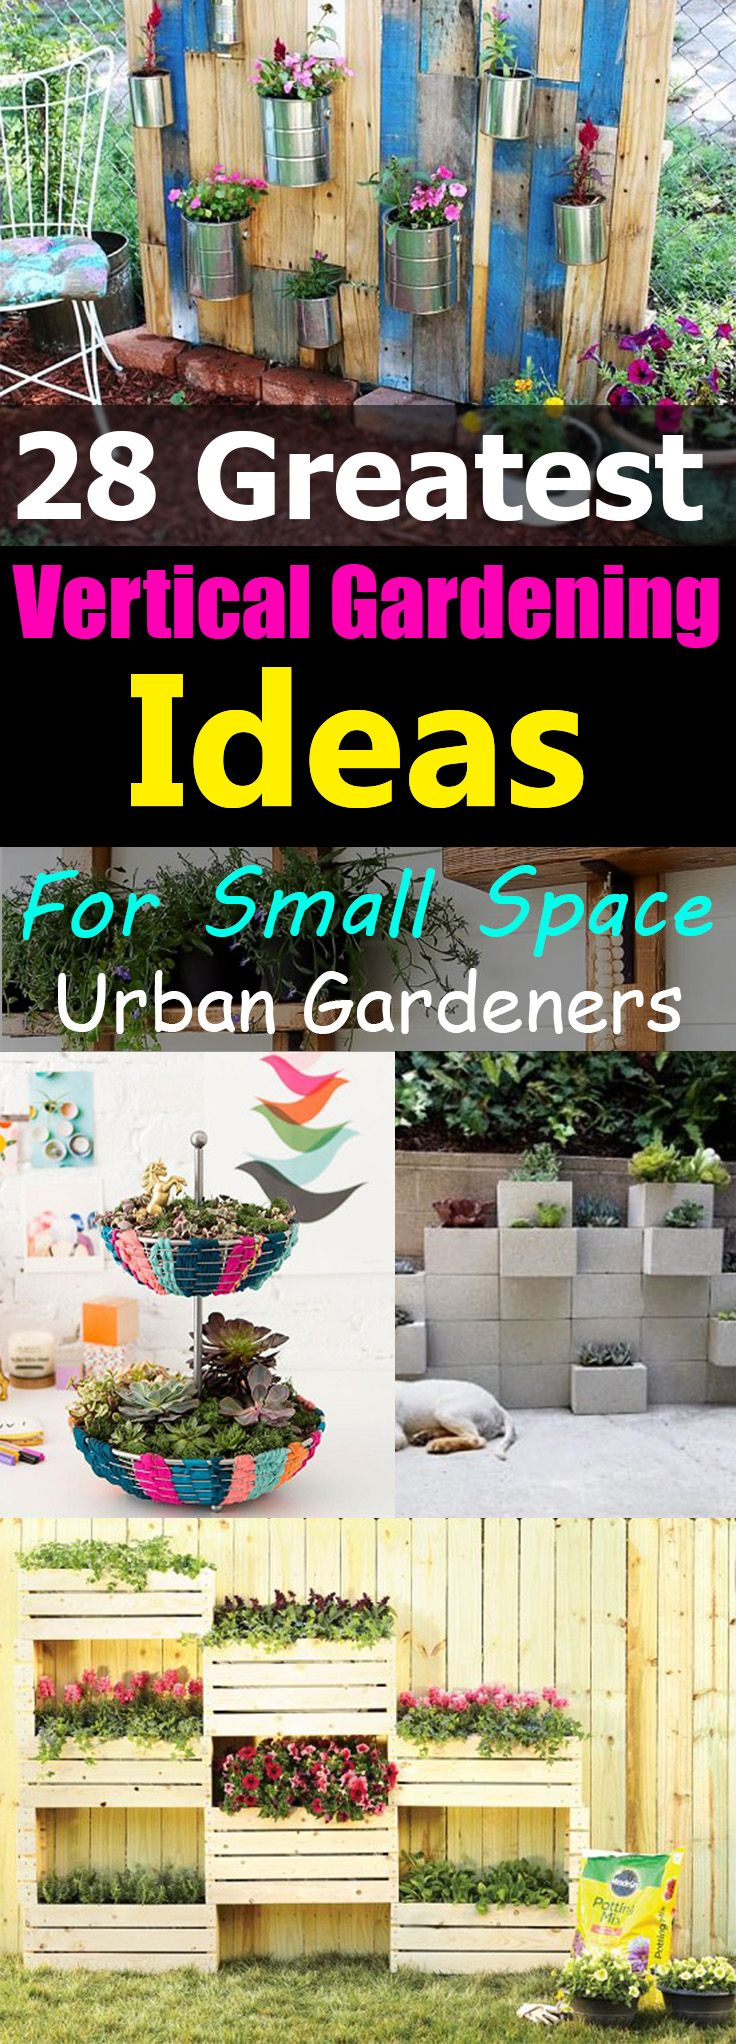 23 urban vertical garden